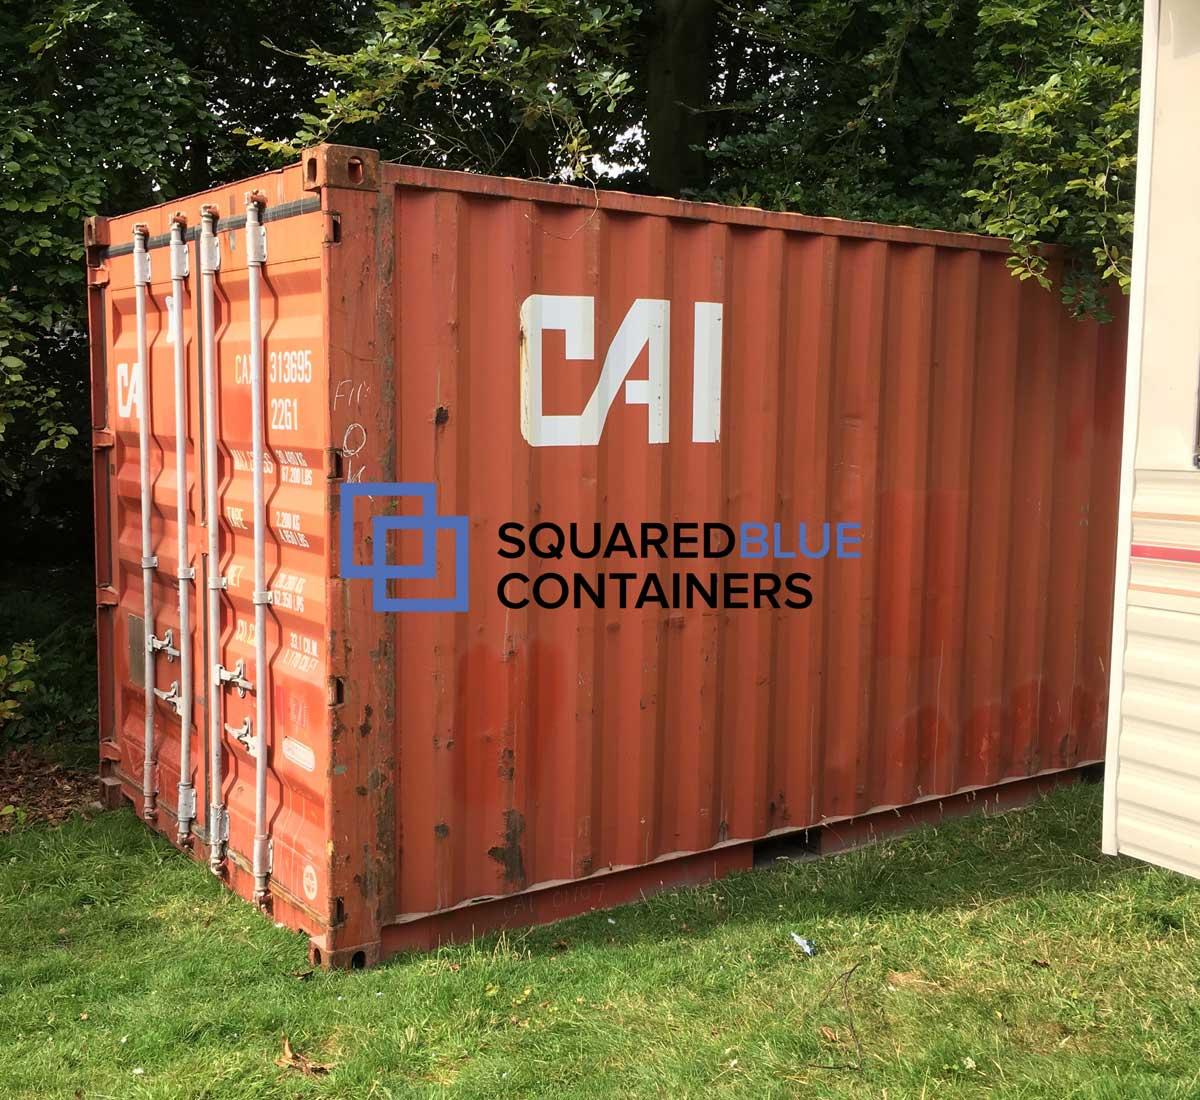 Shipping container for sale used shipping containers for sale from squared blue - How to find shipping containers for sale ...